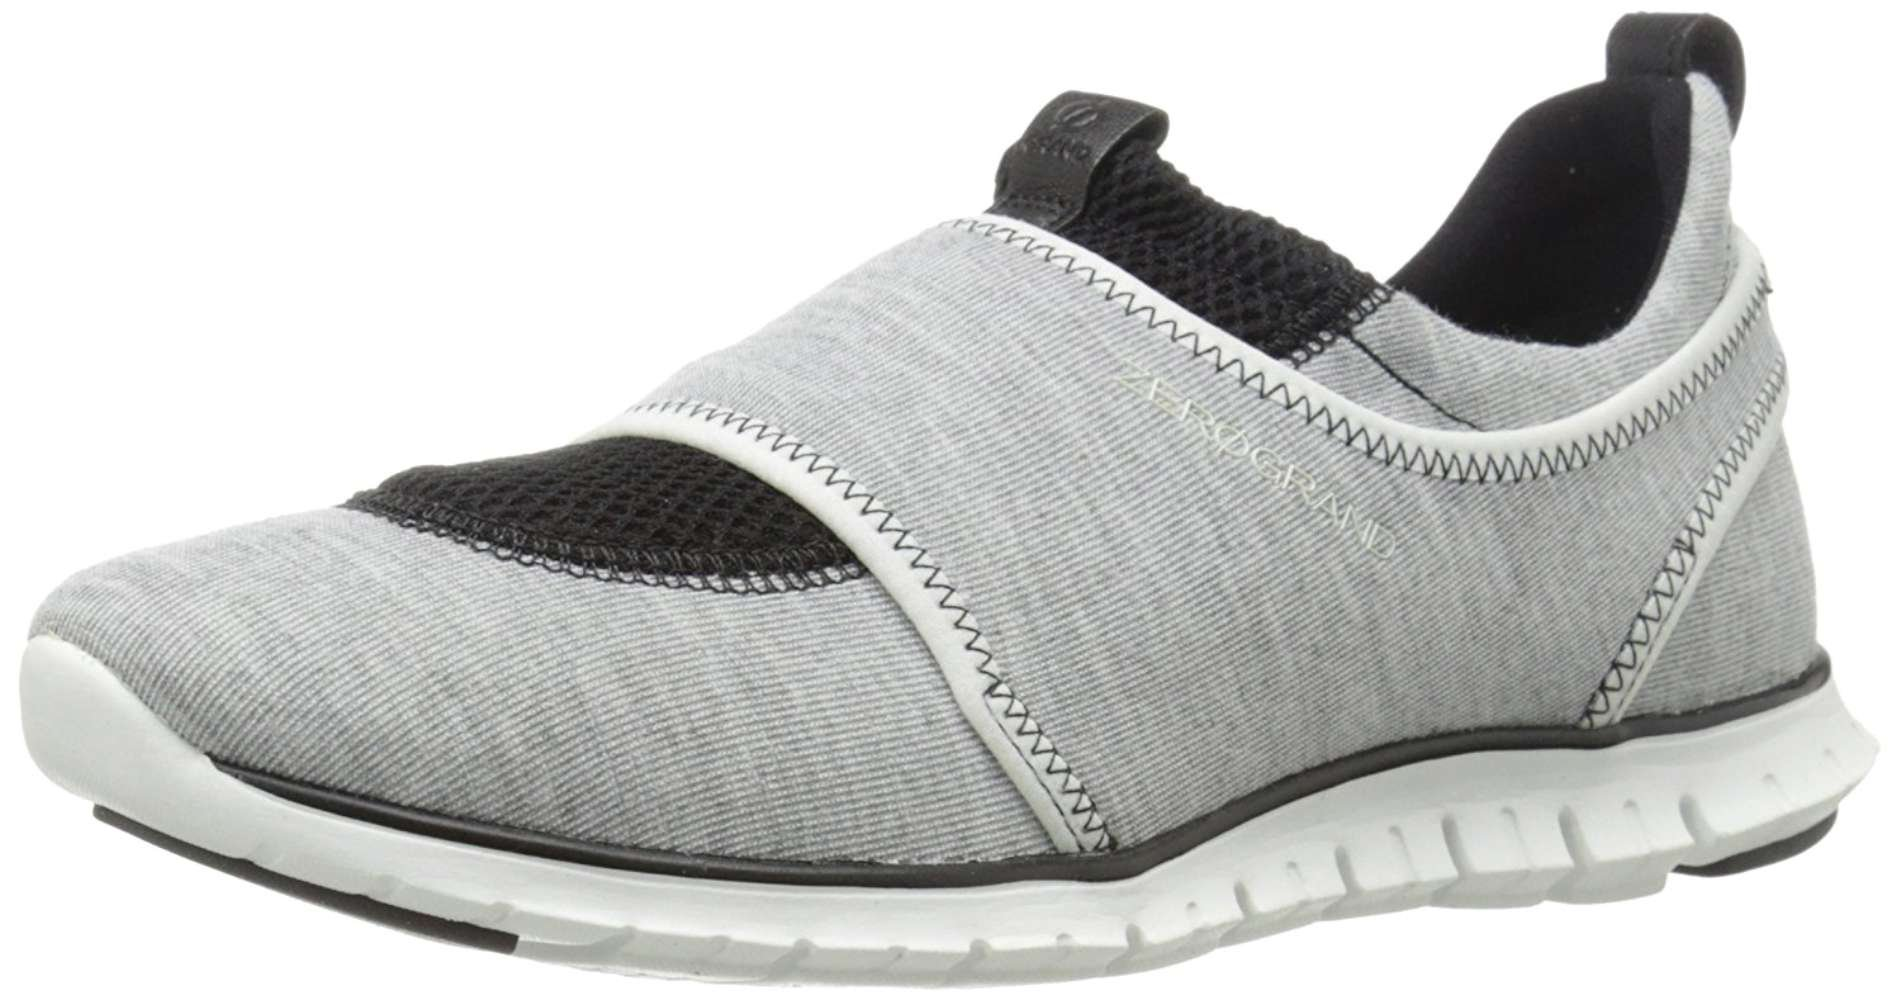 Cole Haan Womens Zerogrand Low Top Slip On, Grey/Optc.Whte/Blck, Size 6.0